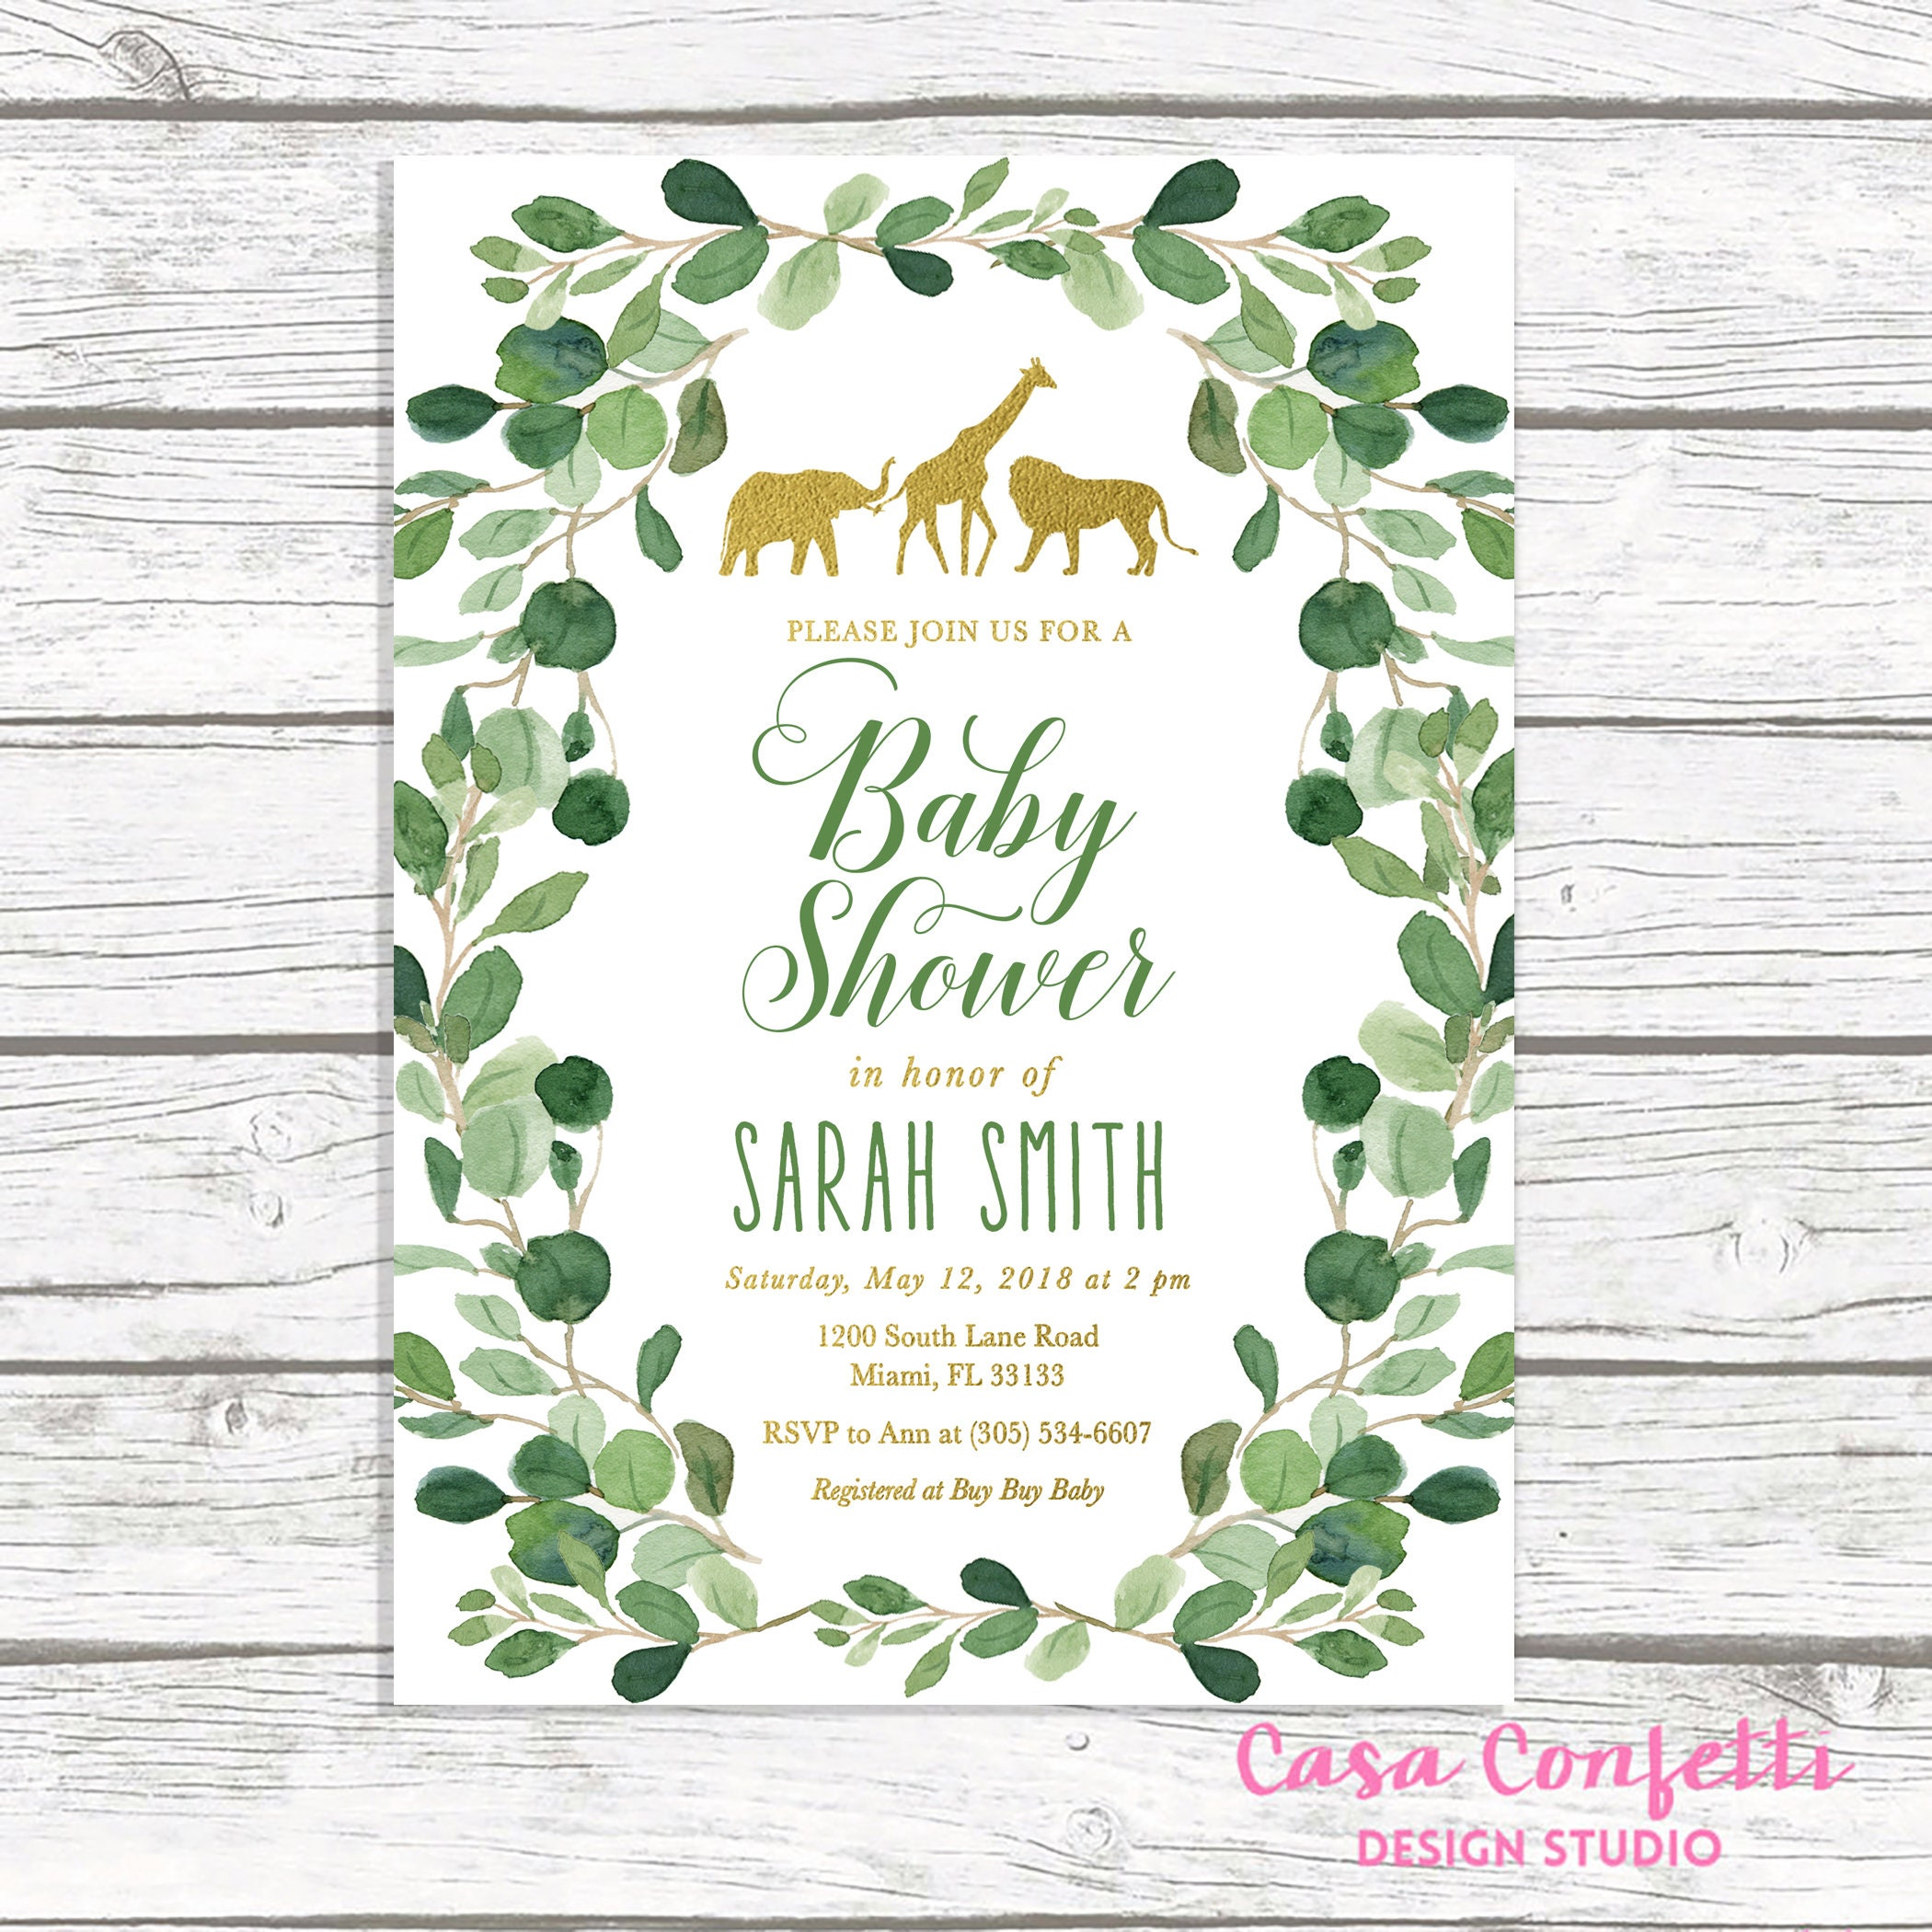 invitation boys free shower for invitations and templates inspirational party baby safari boy birthday